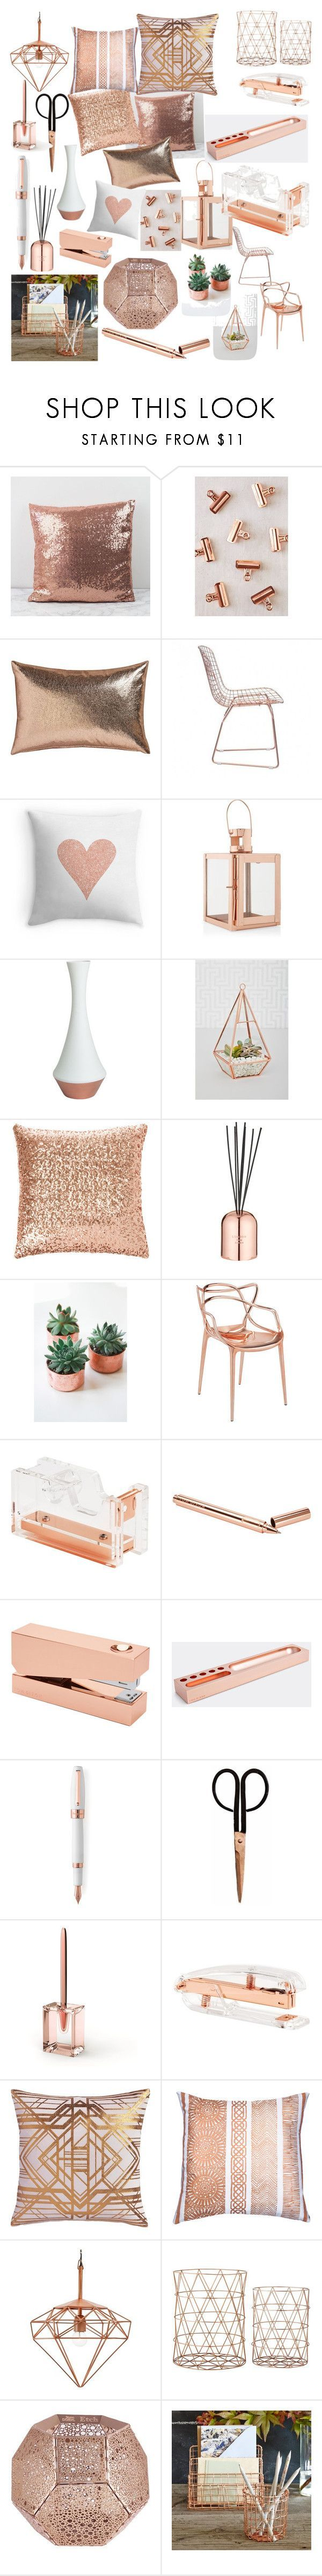 Best 10 Rose gold bedroom accessories ideas on Pinterest Copper